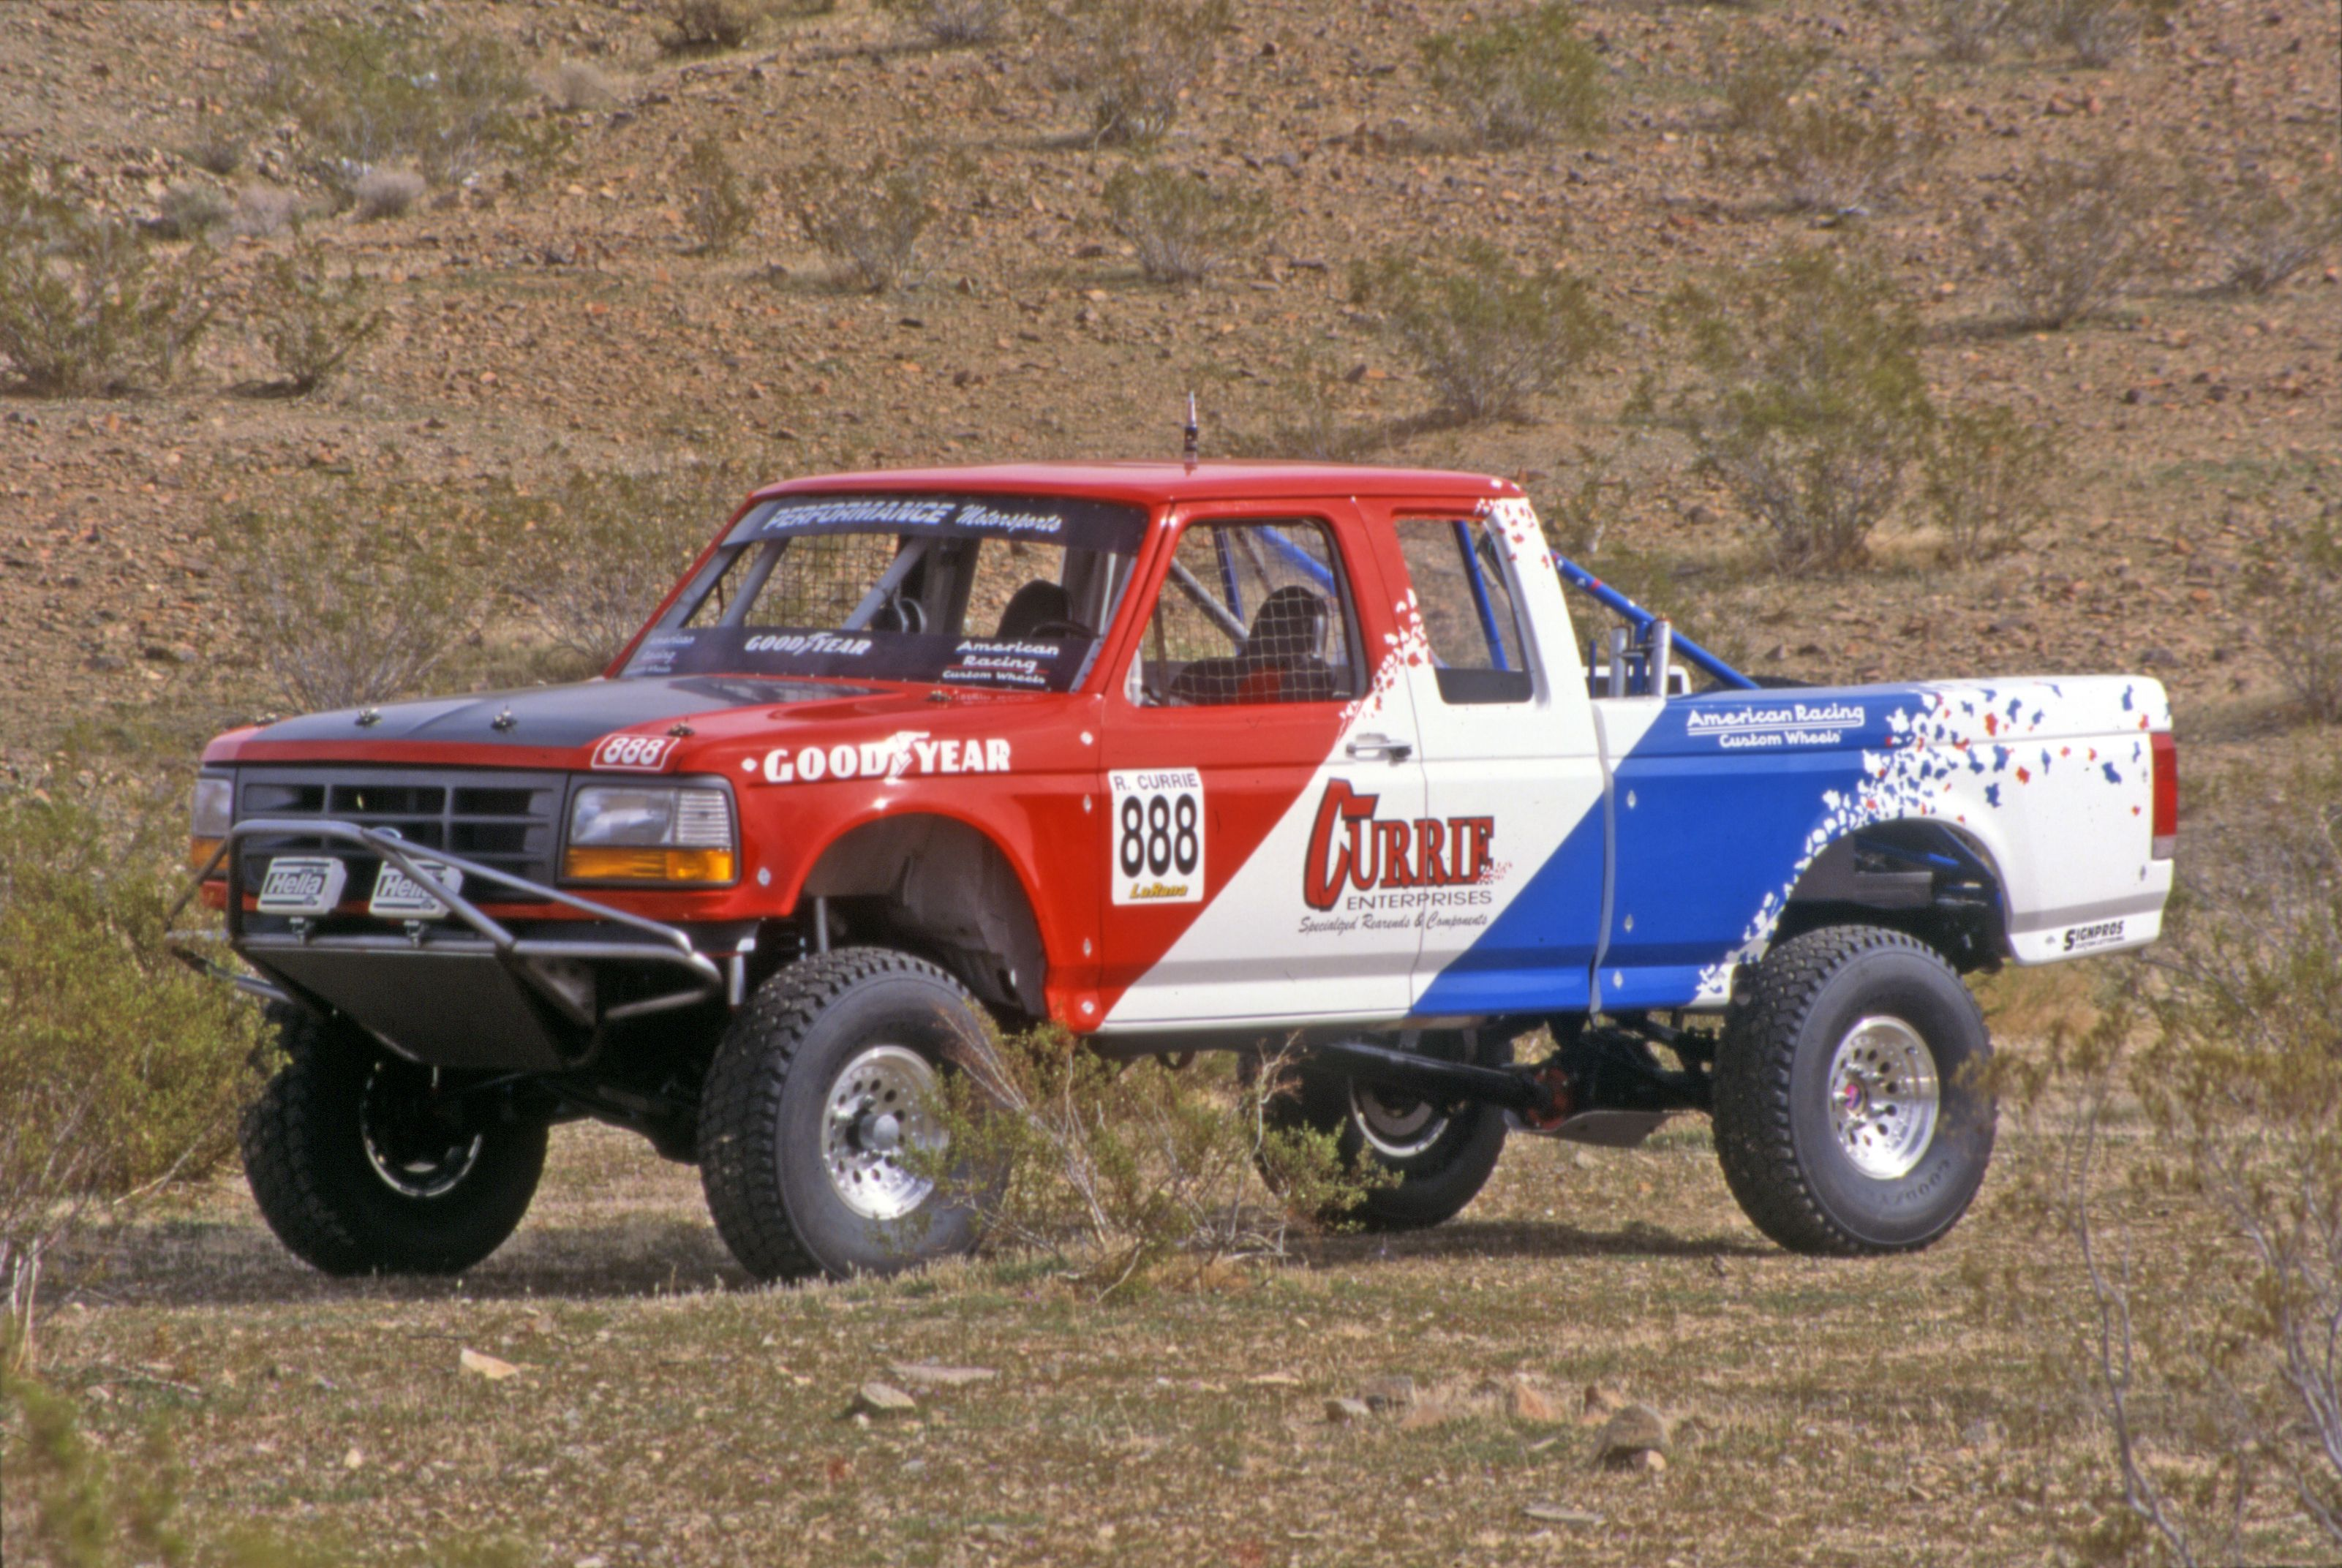 The Currie Brother S Off Road Racing F 150 Ford Truck In The Early